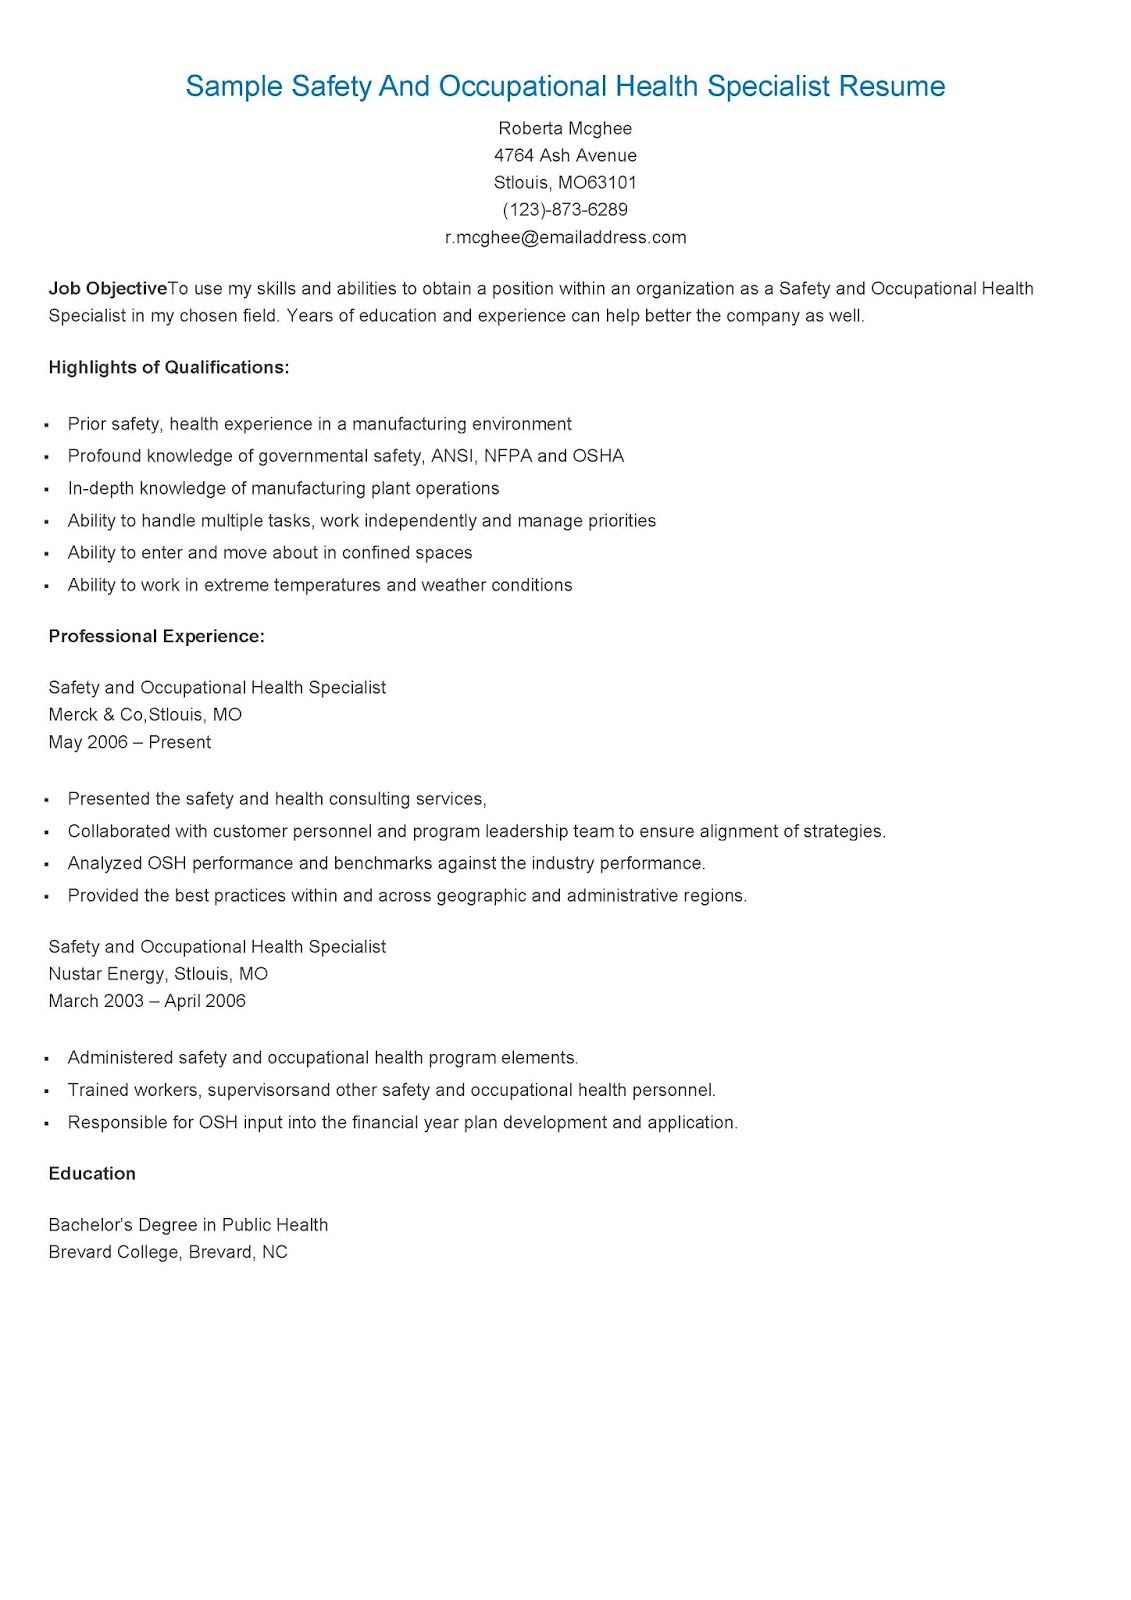 Sample Safety And Occupational Health Specialist Resume